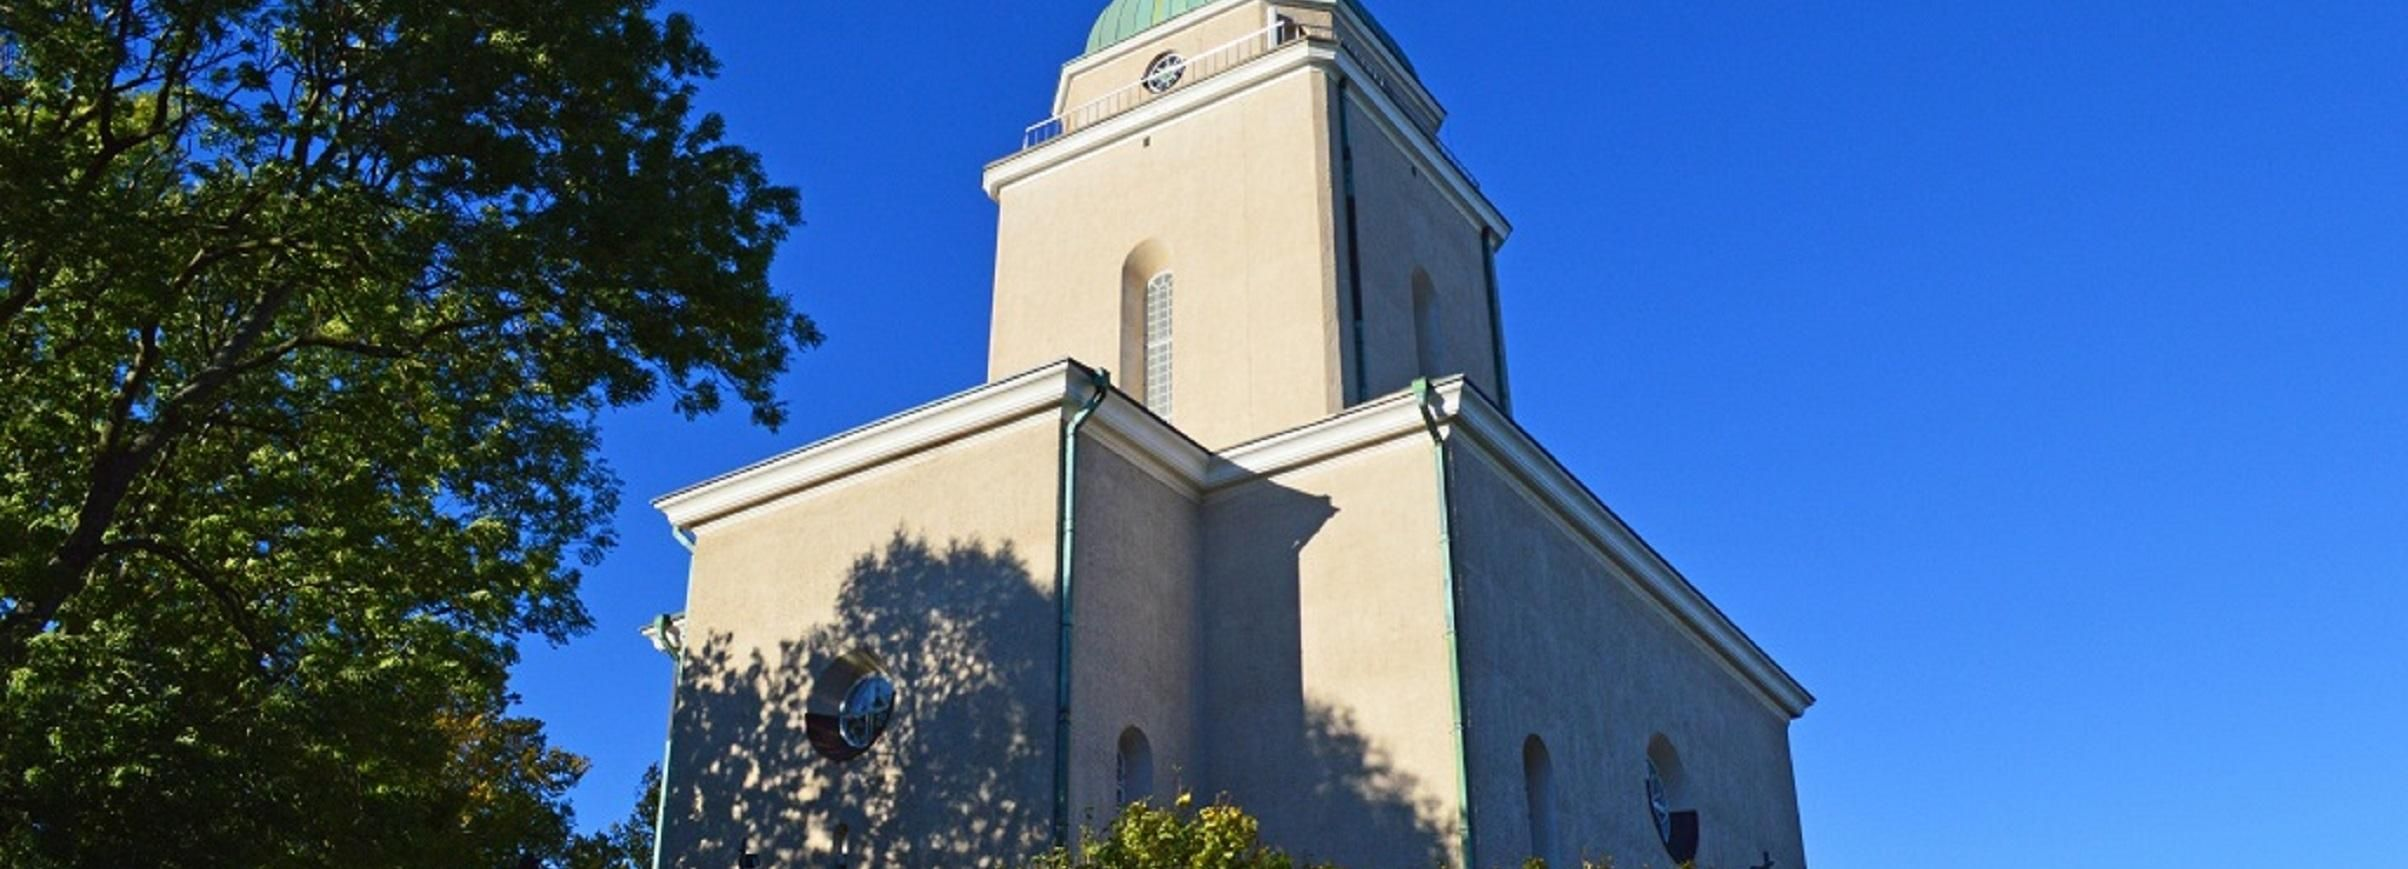 Helsinki Shore Excursion: City Sightseeing and Suomenlinna